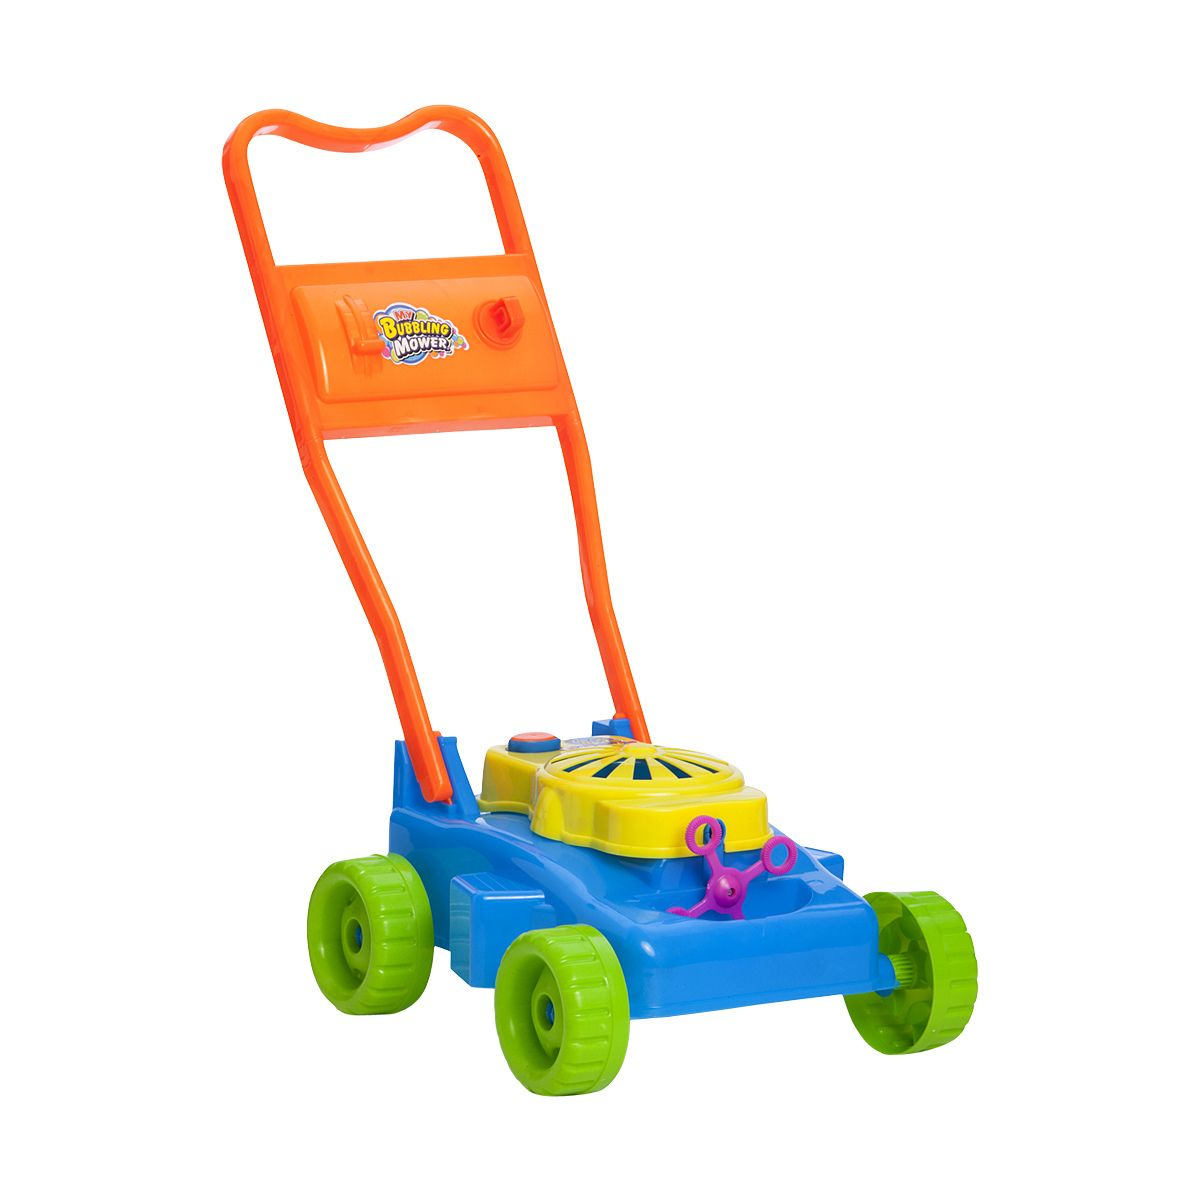 My Bubbling Mower Toy Kmart Chloé S Christmas Presents